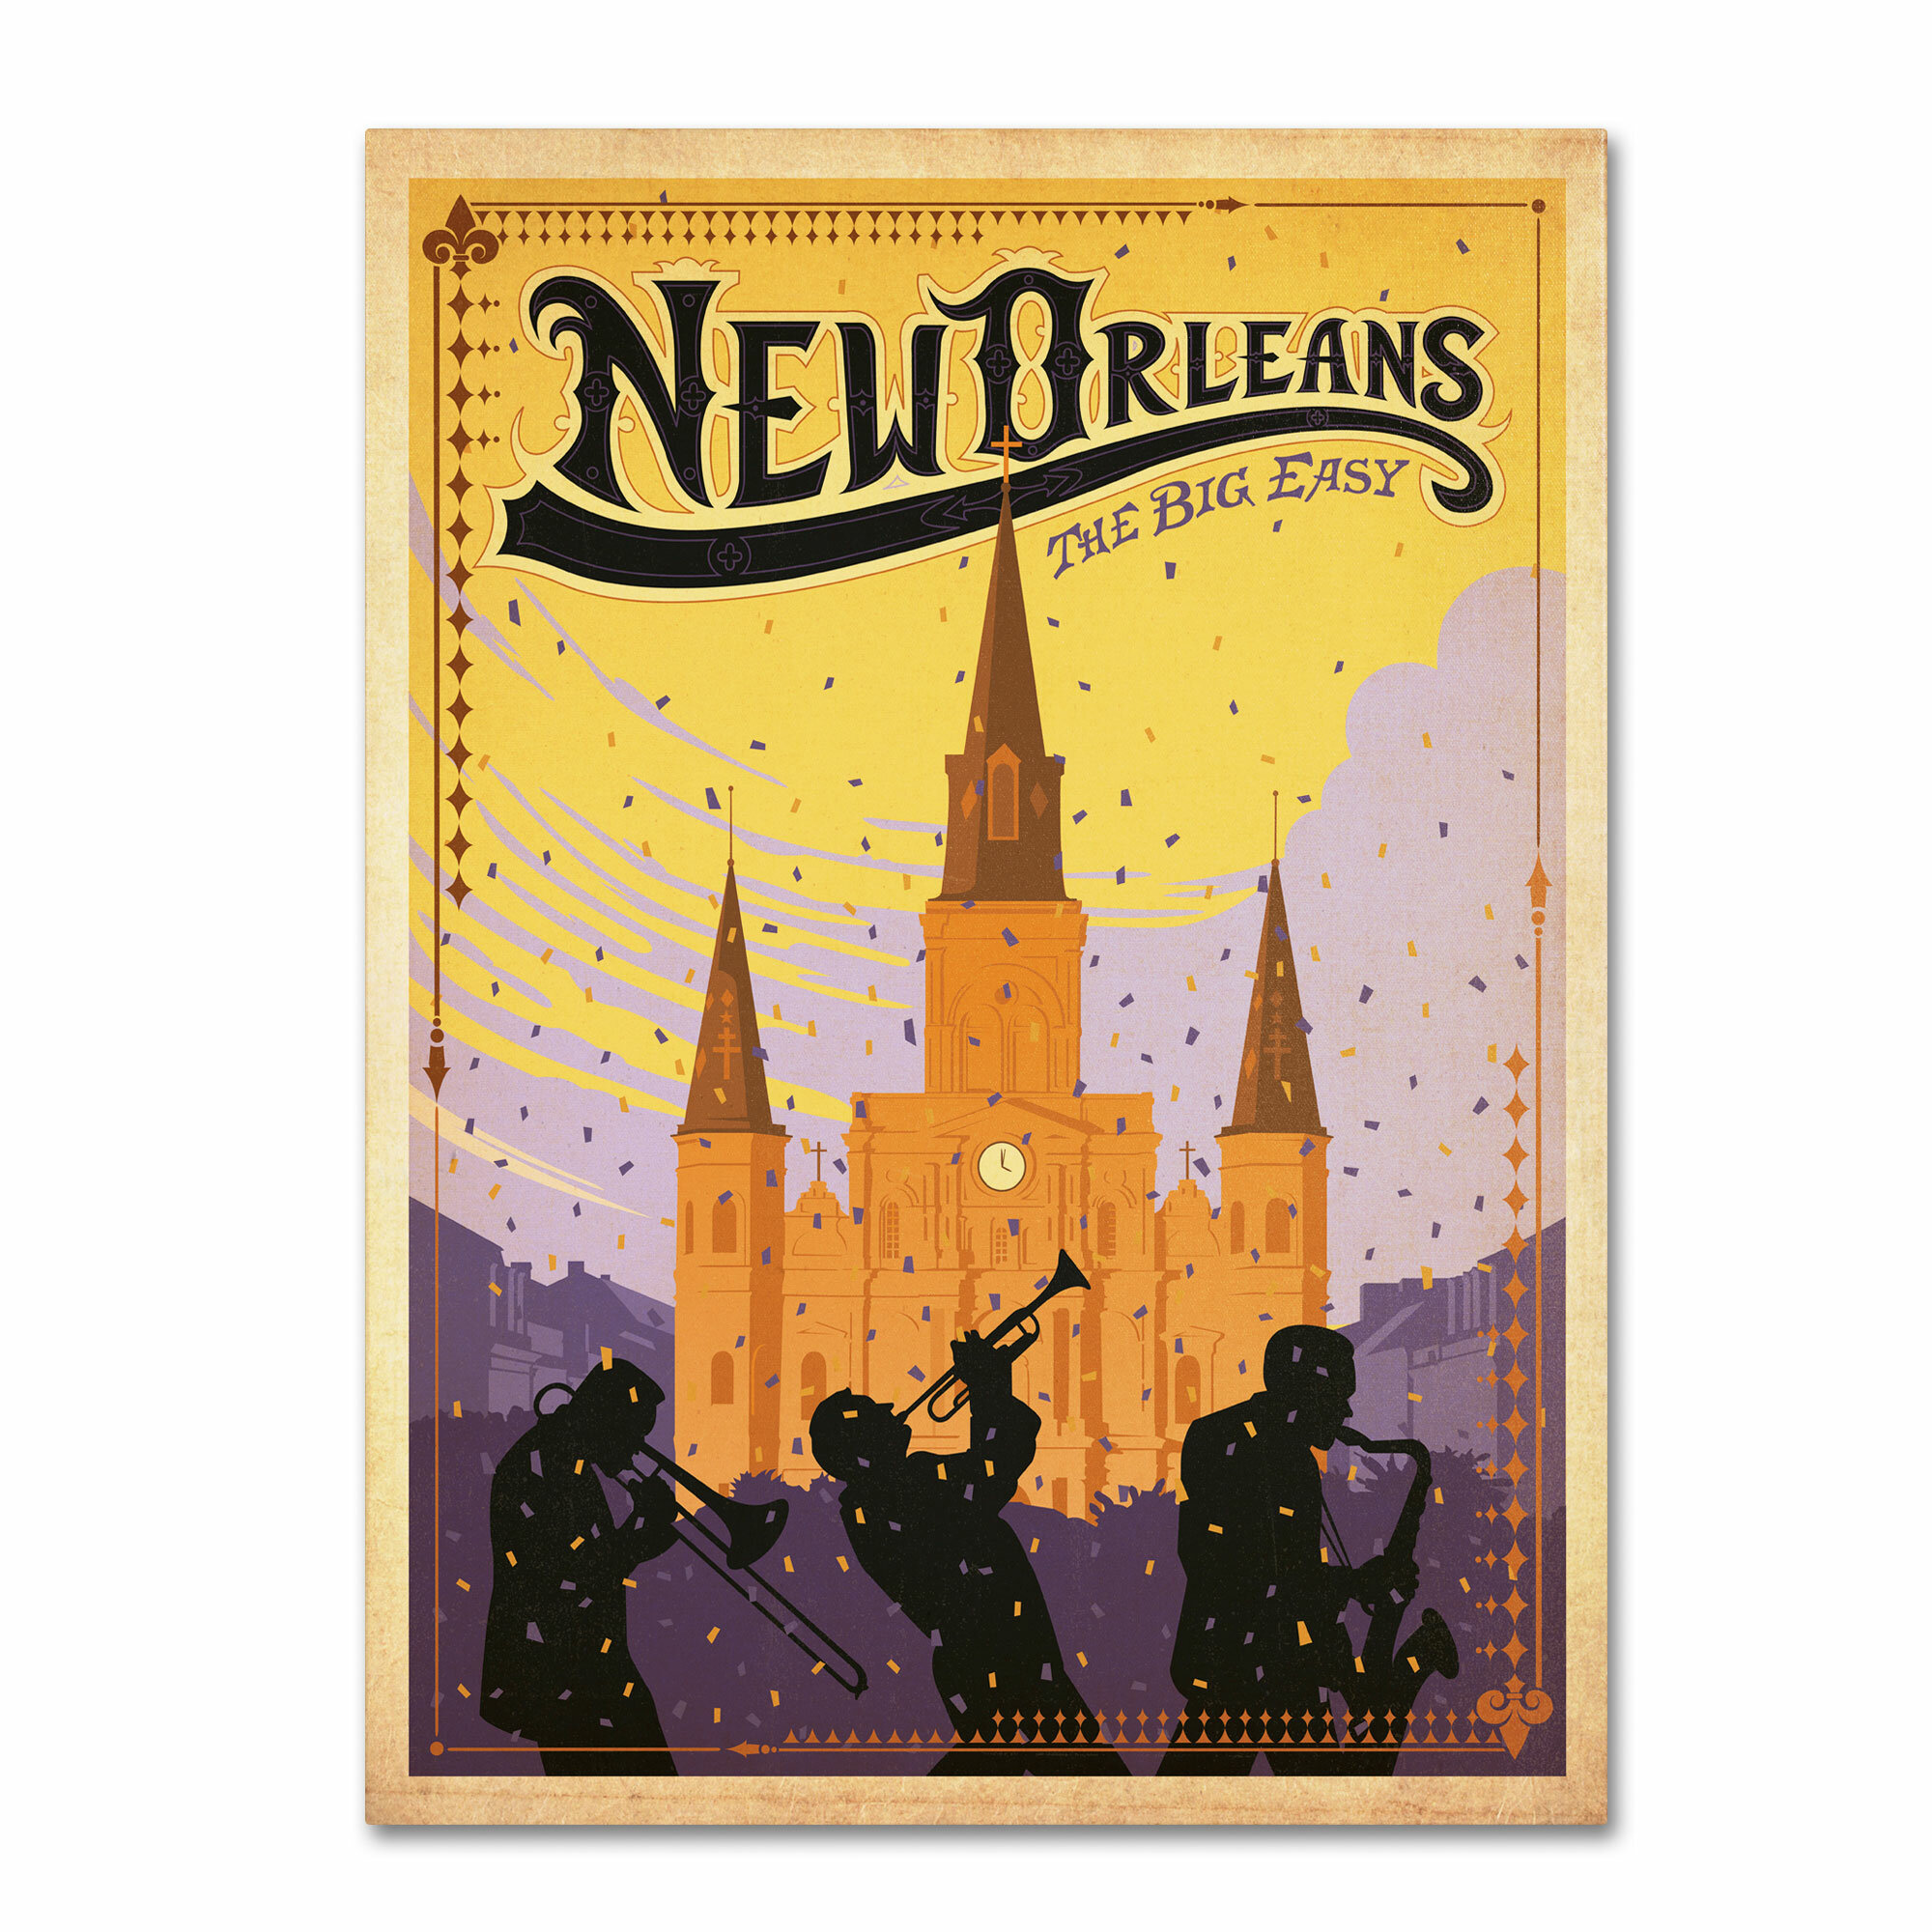 Trademark art new orleans by anderson design group for Craft store new orleans